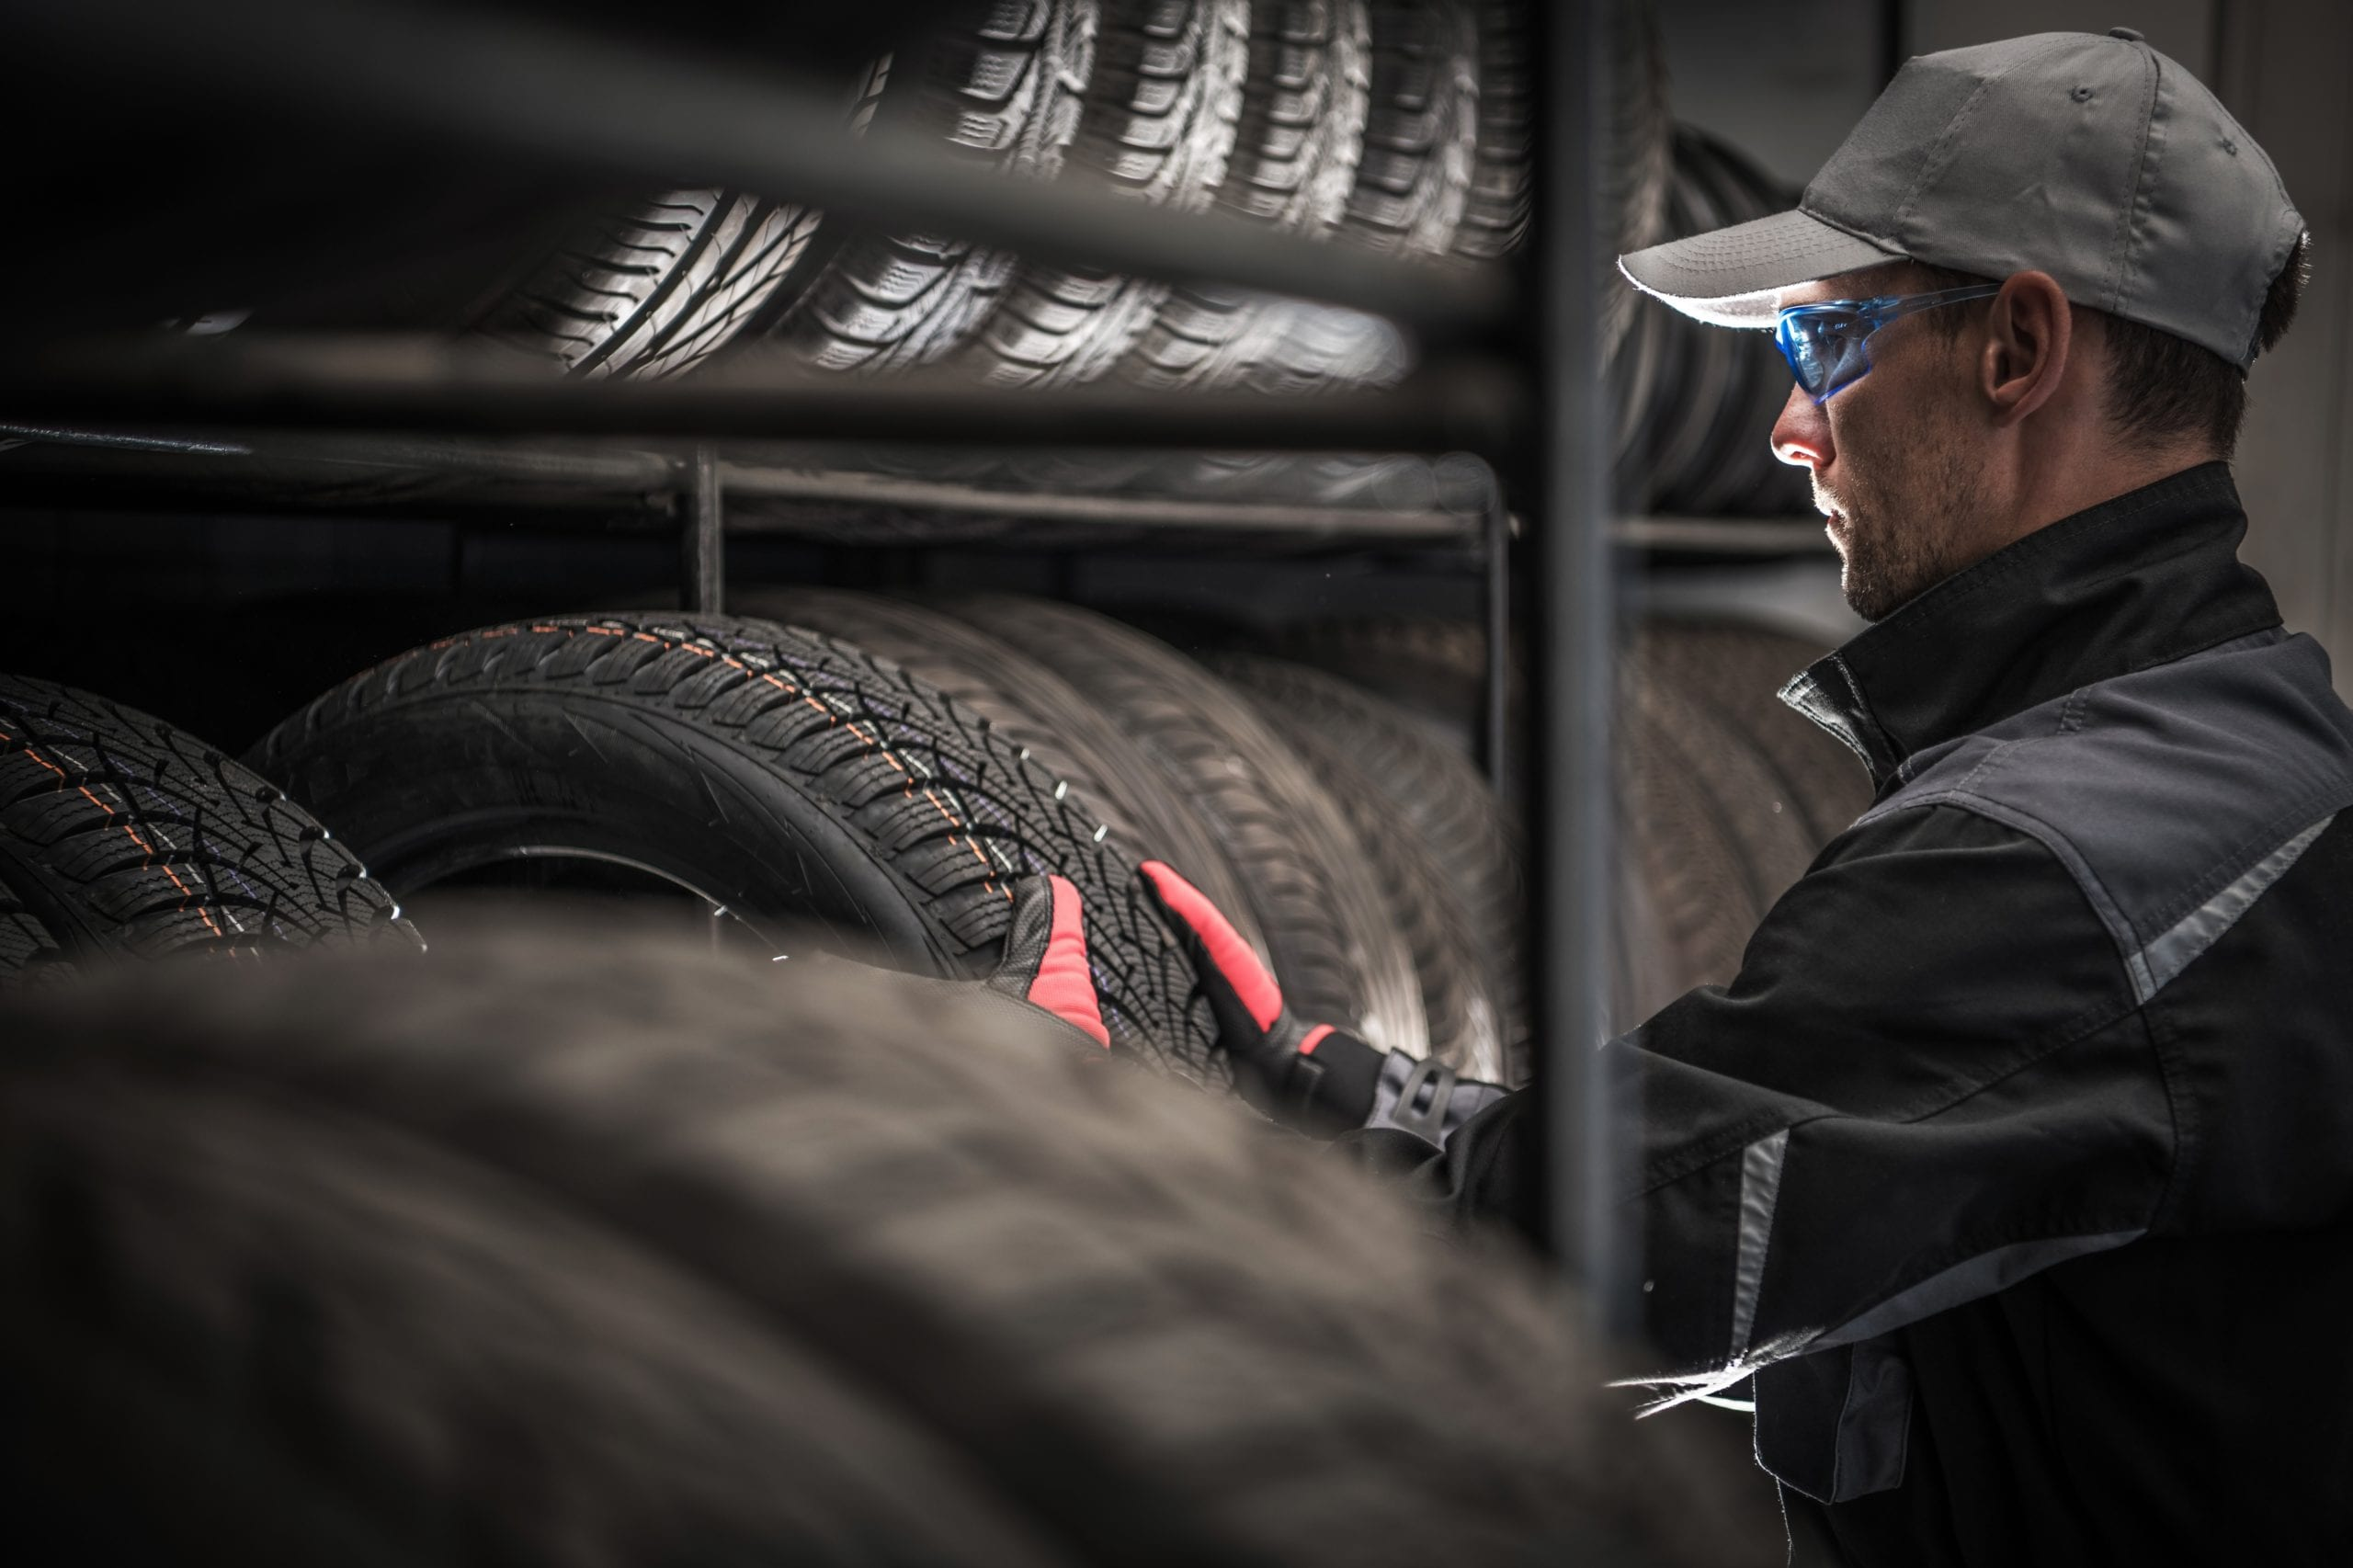 Choosing Right Car Tires For the Season. Vulcanization and Tire Sales Shop Caucasian Worker in His 30s. Automotive Theme.